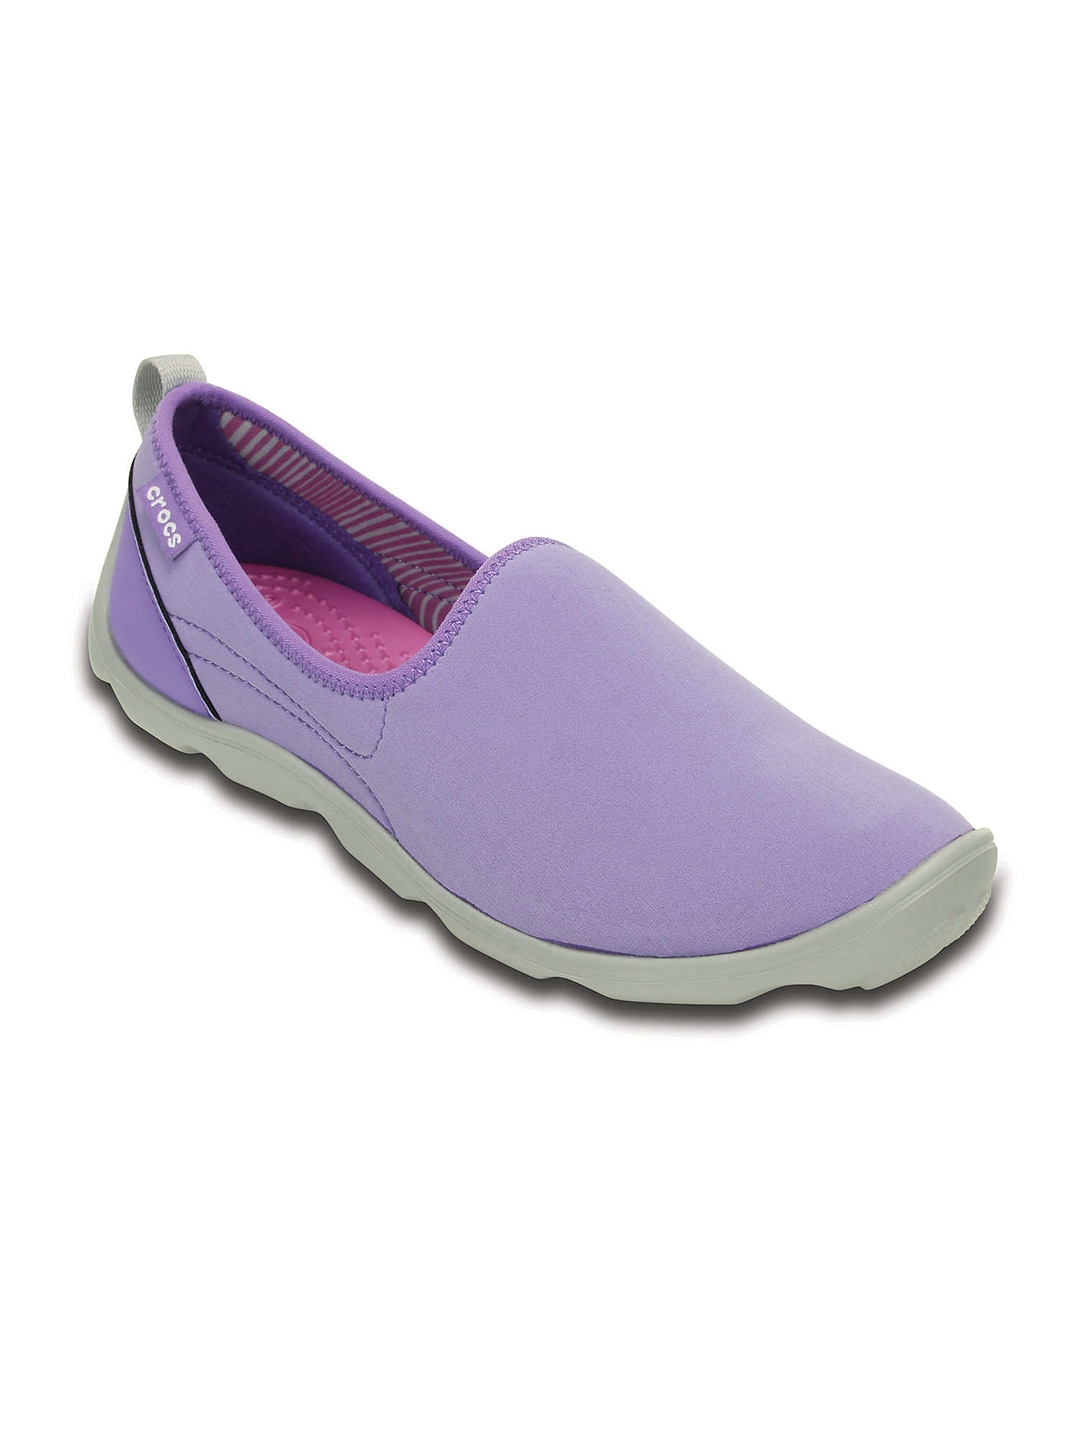 59341ced9 Crocs 14698-5k3 Women Purple Casual Shoes - Best Price in India ...